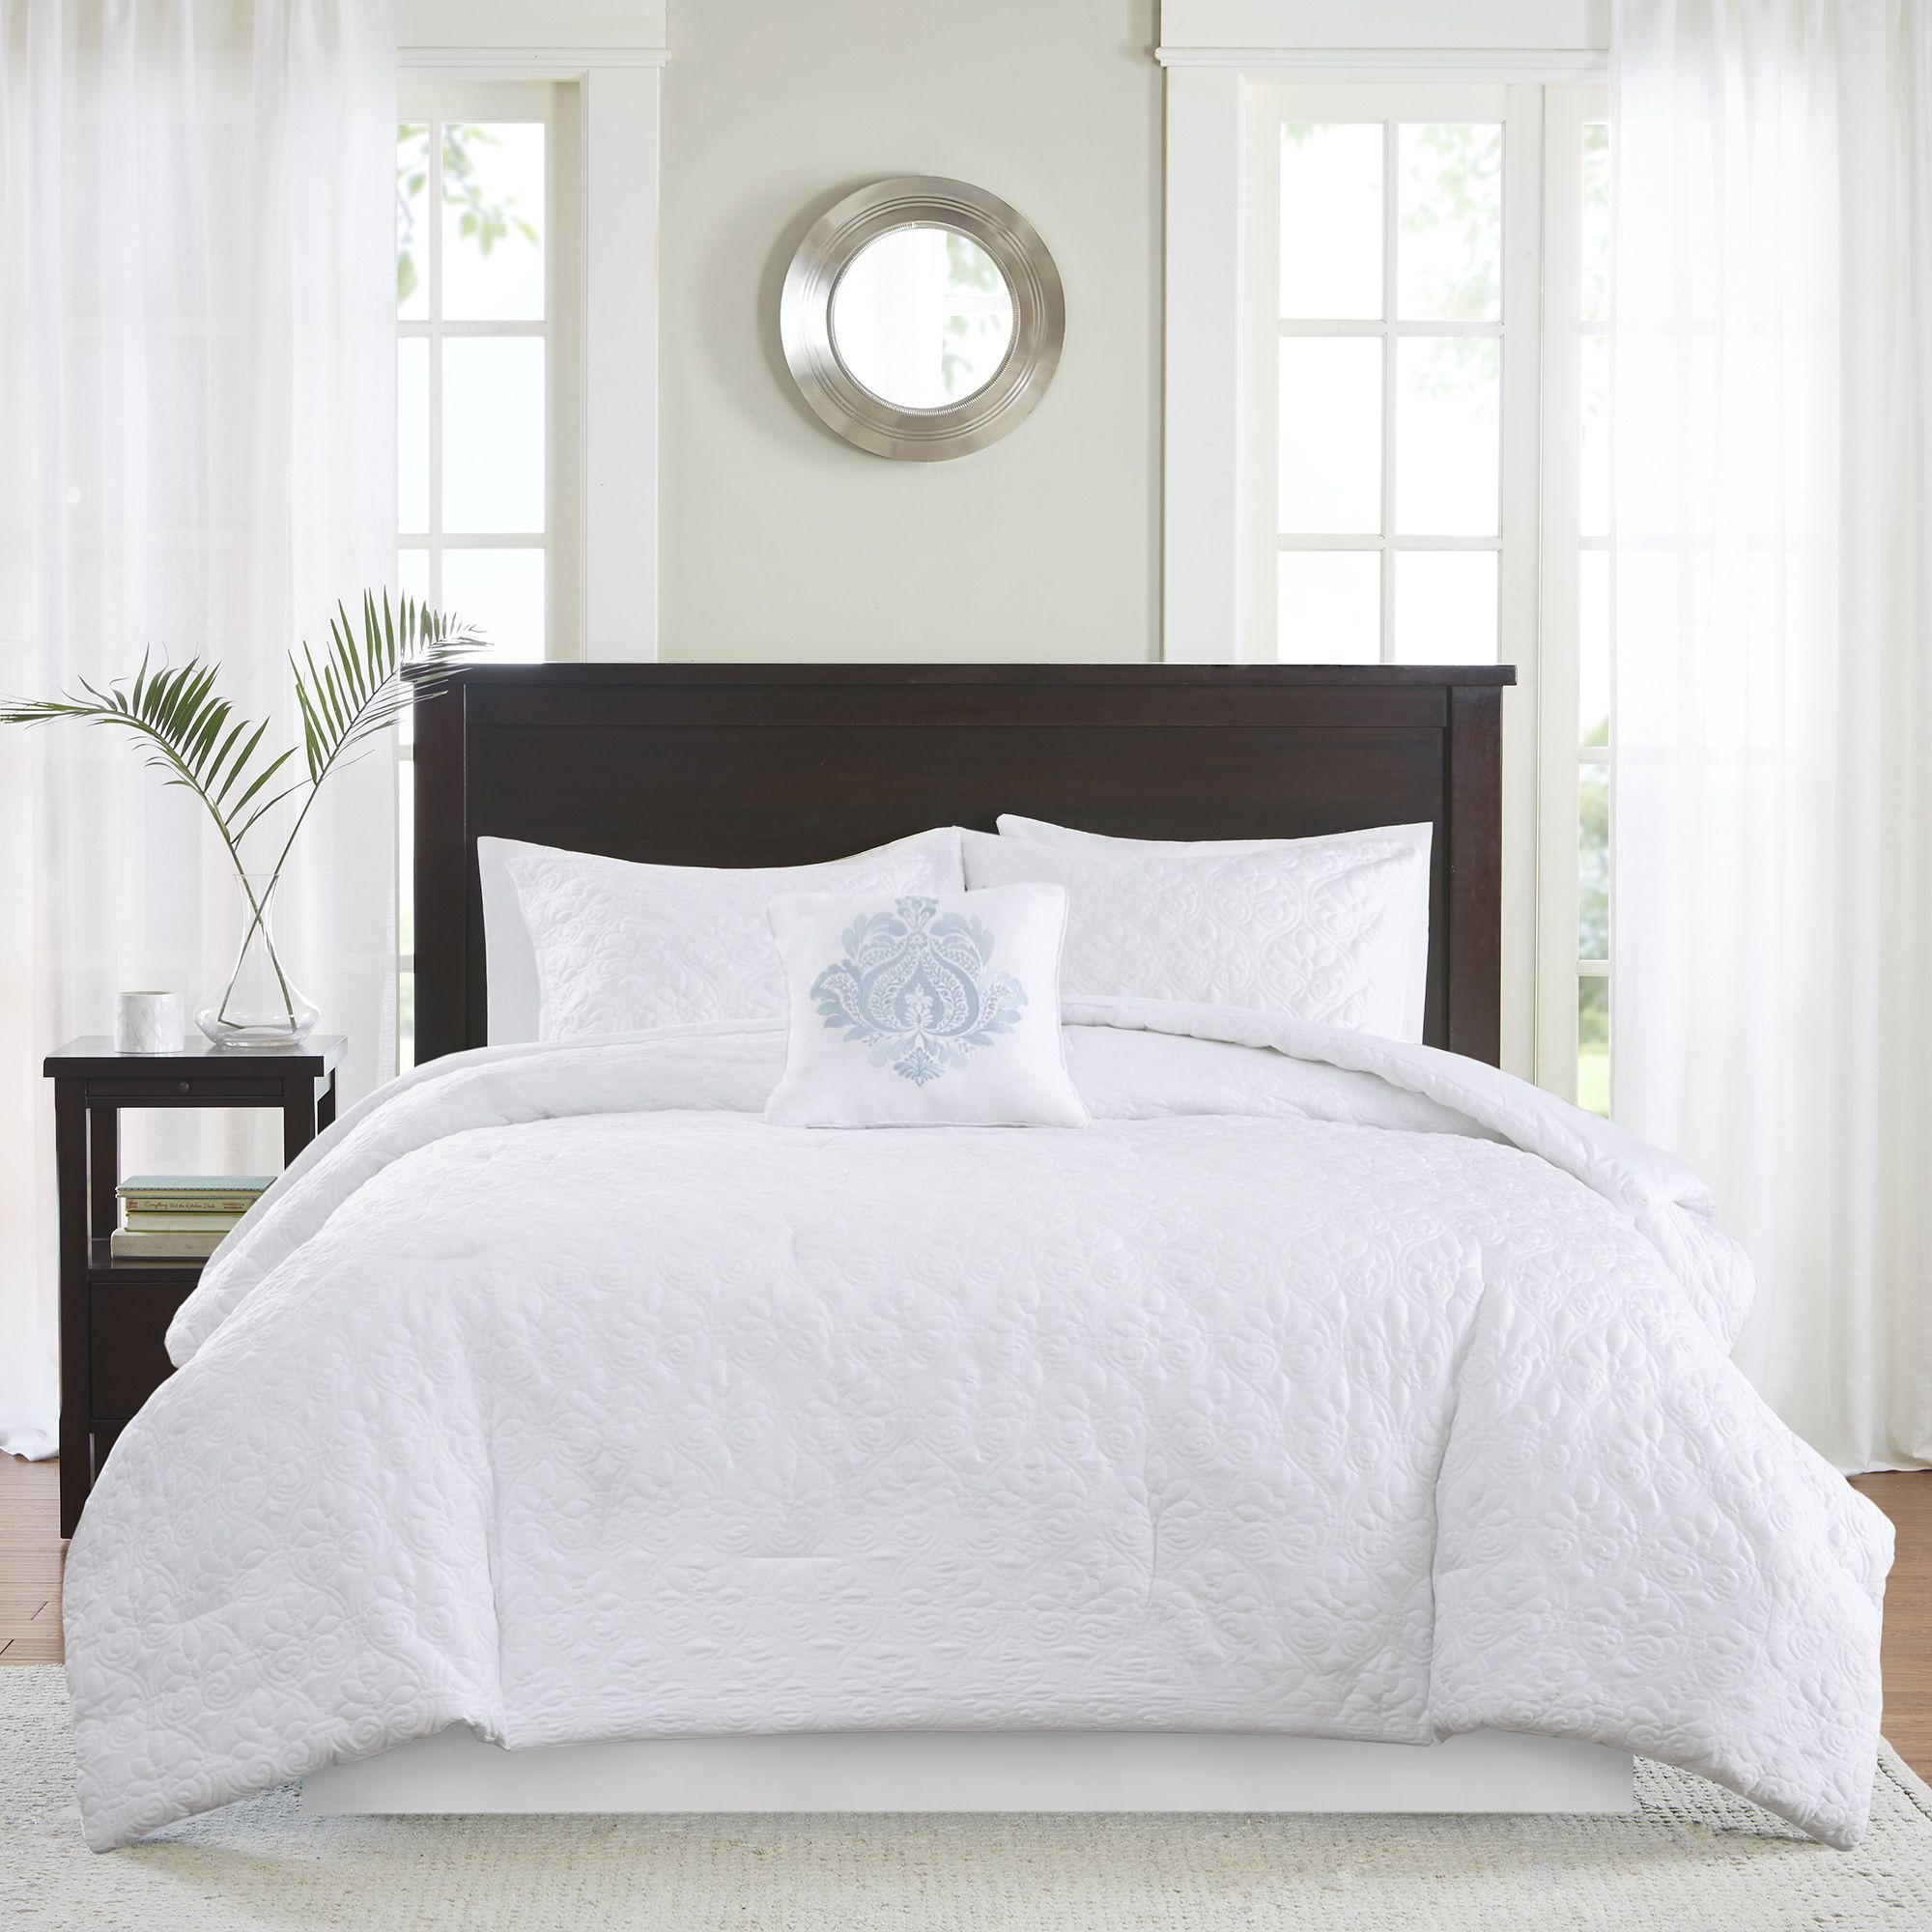 Madison Park Mansfield Quilted White Comforter Set - Overstockcom Shopping